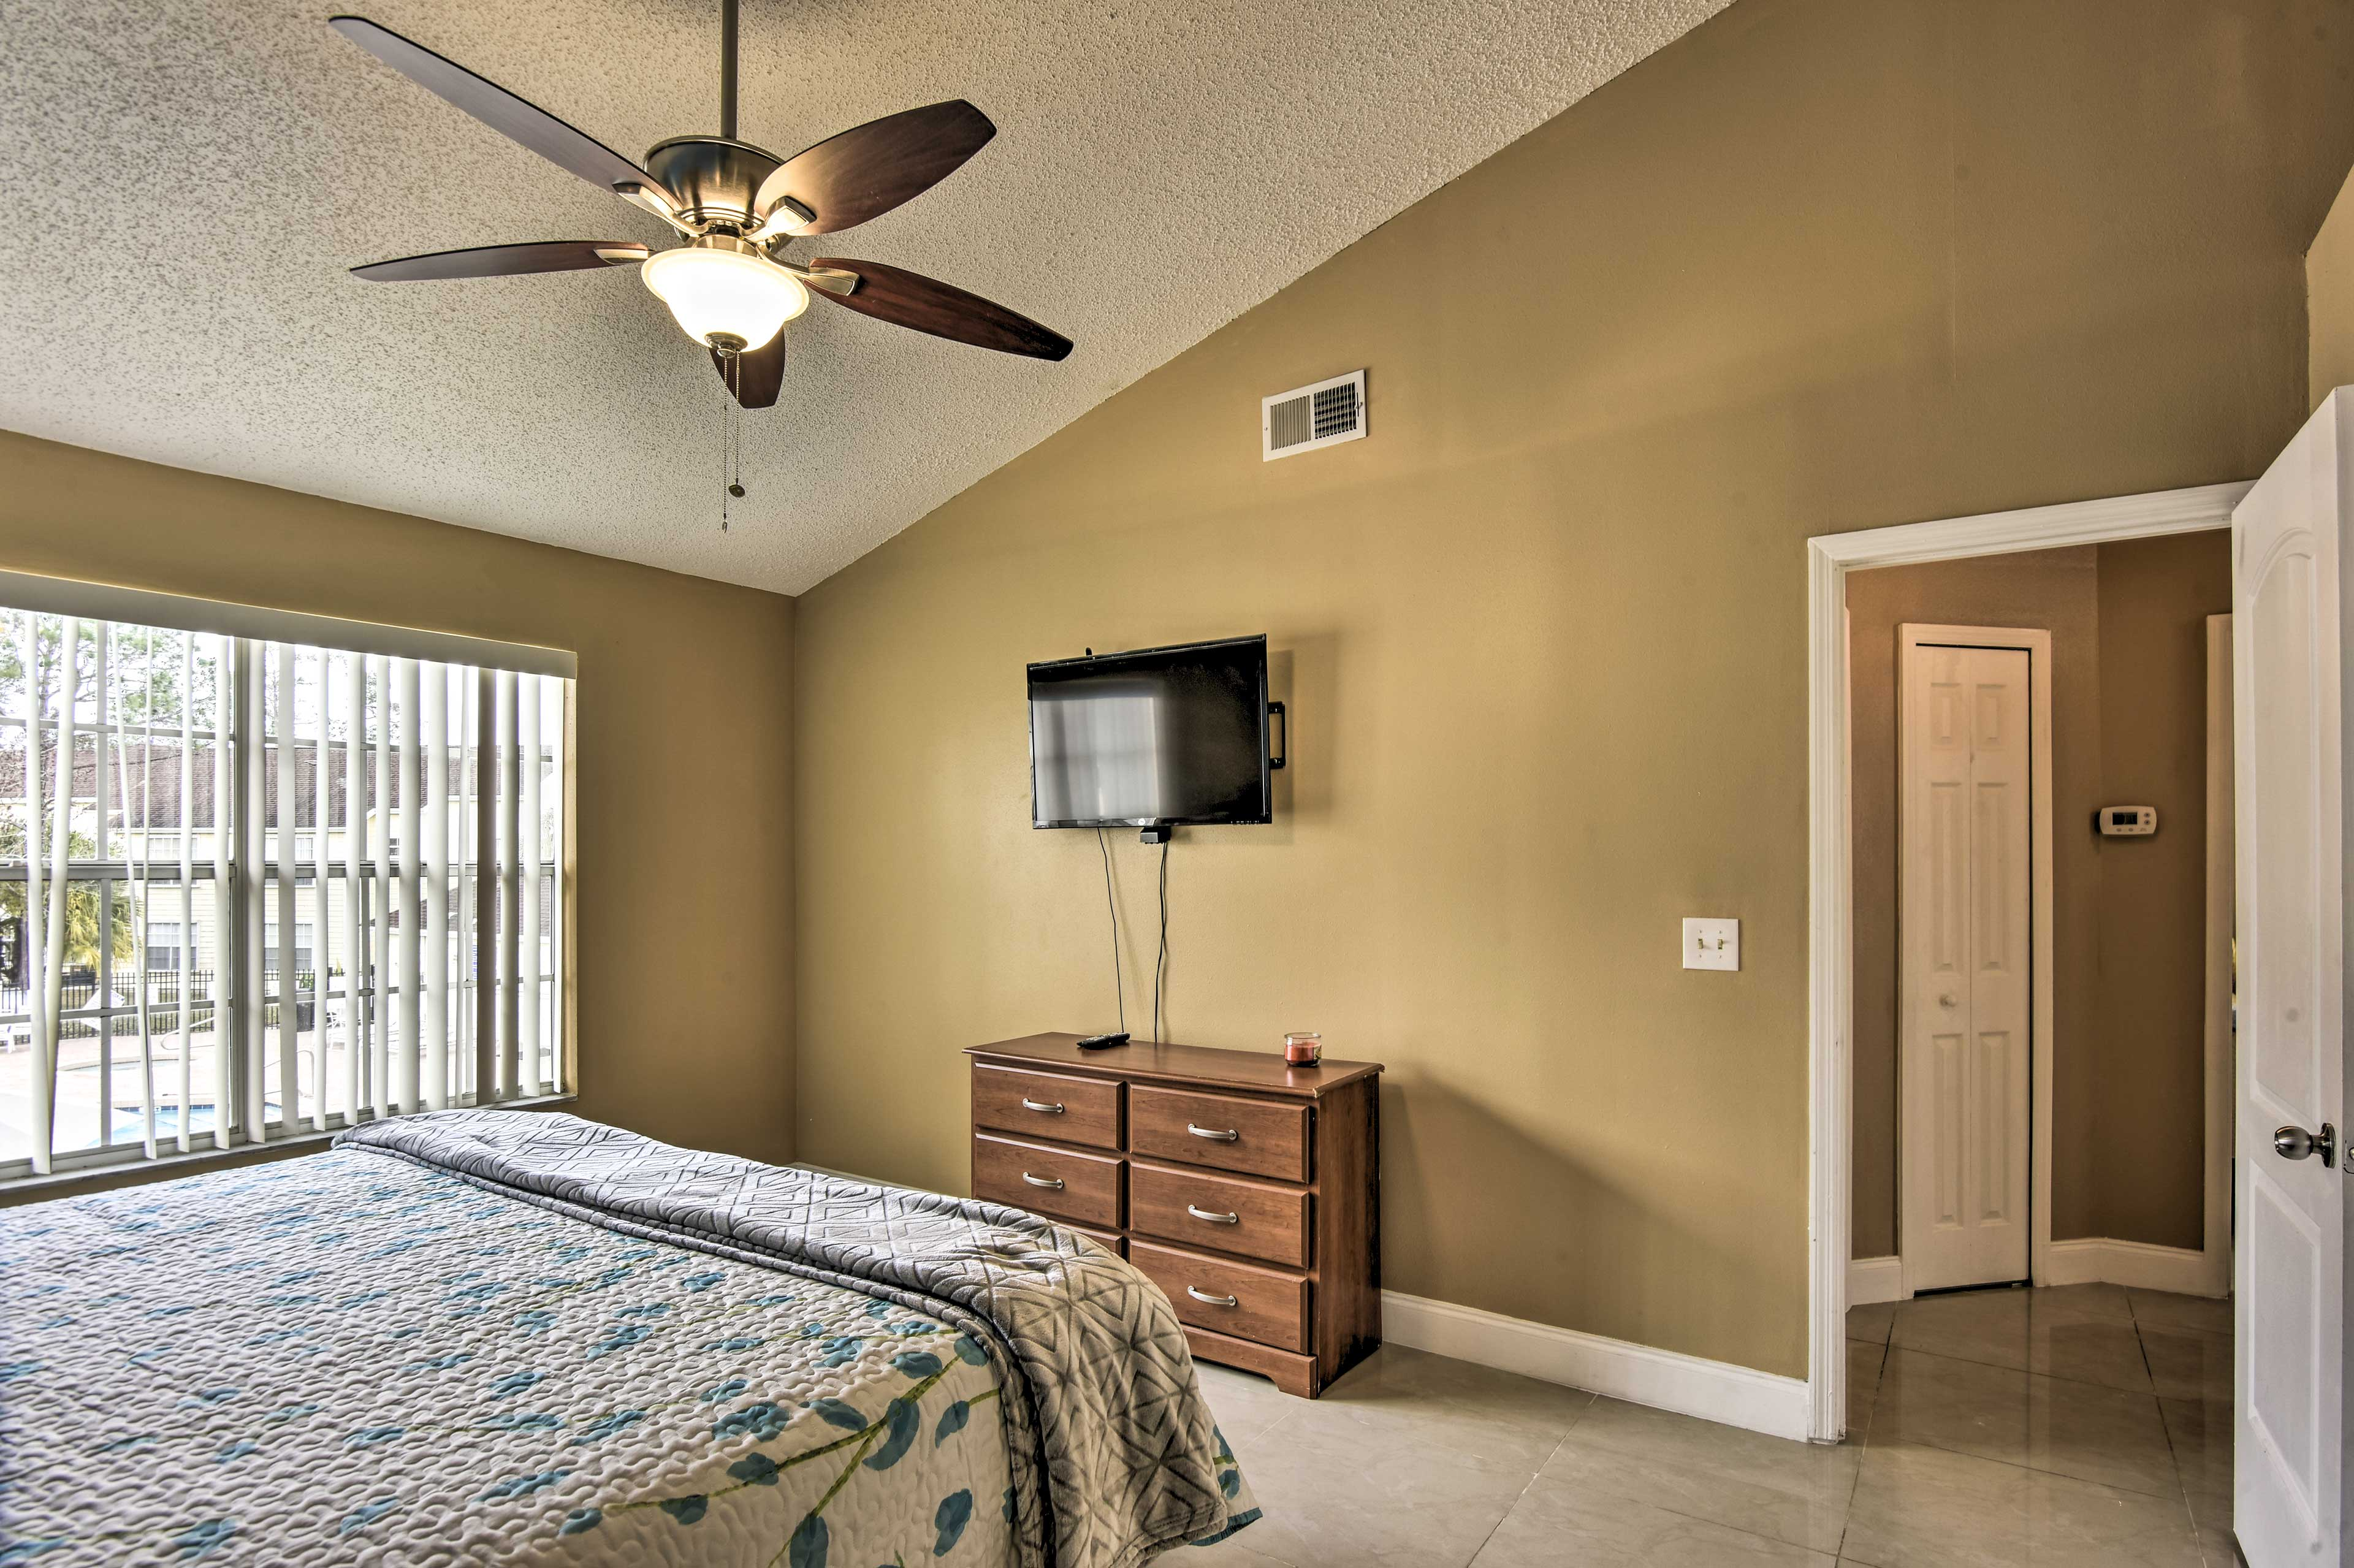 The master bedroom sleeps 2 on a king bed, and is equipped with a cable TV.